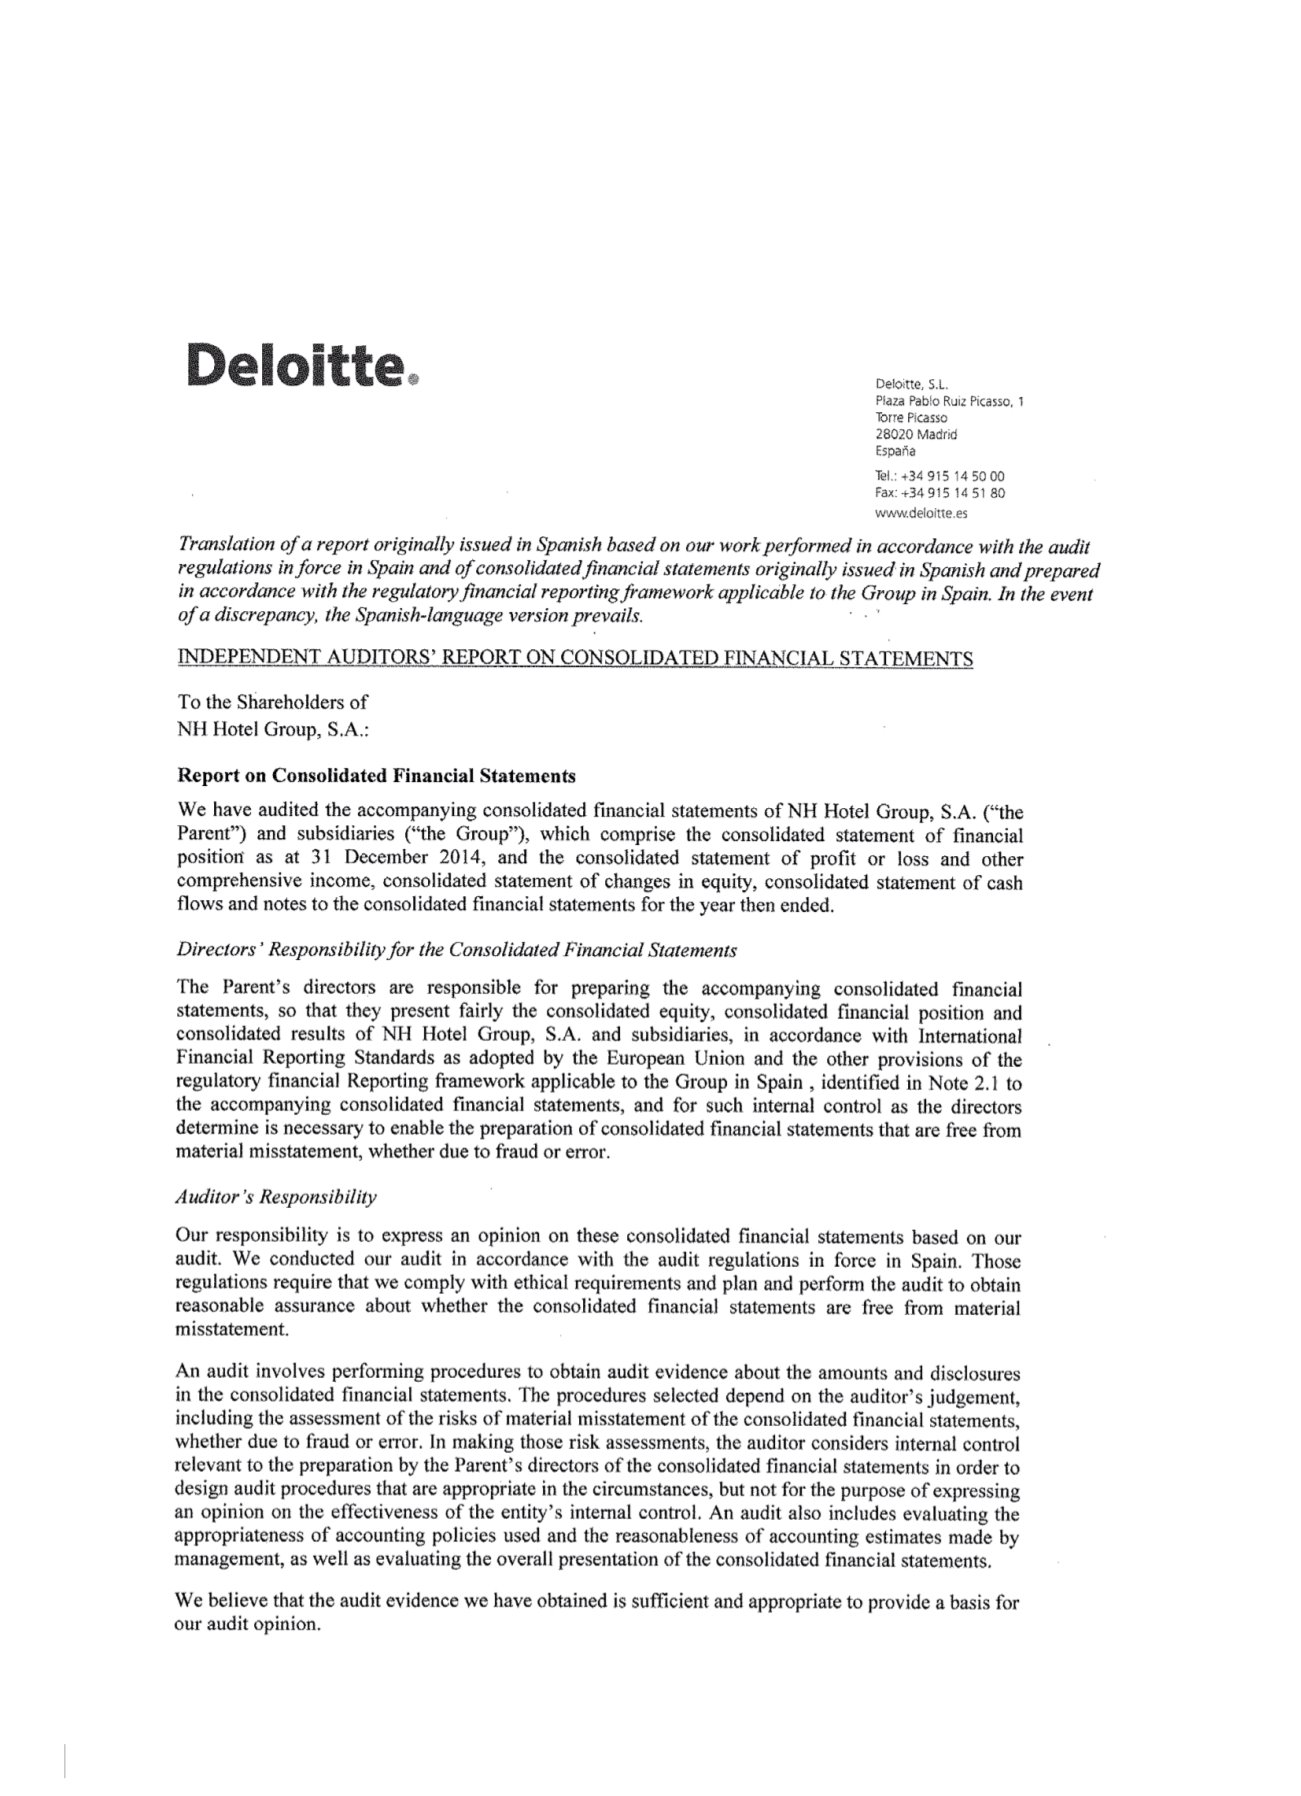 Consolidated financial statements and management report consolidated financial statements and management report page 6 independent auditors report on altavistaventures Image collections